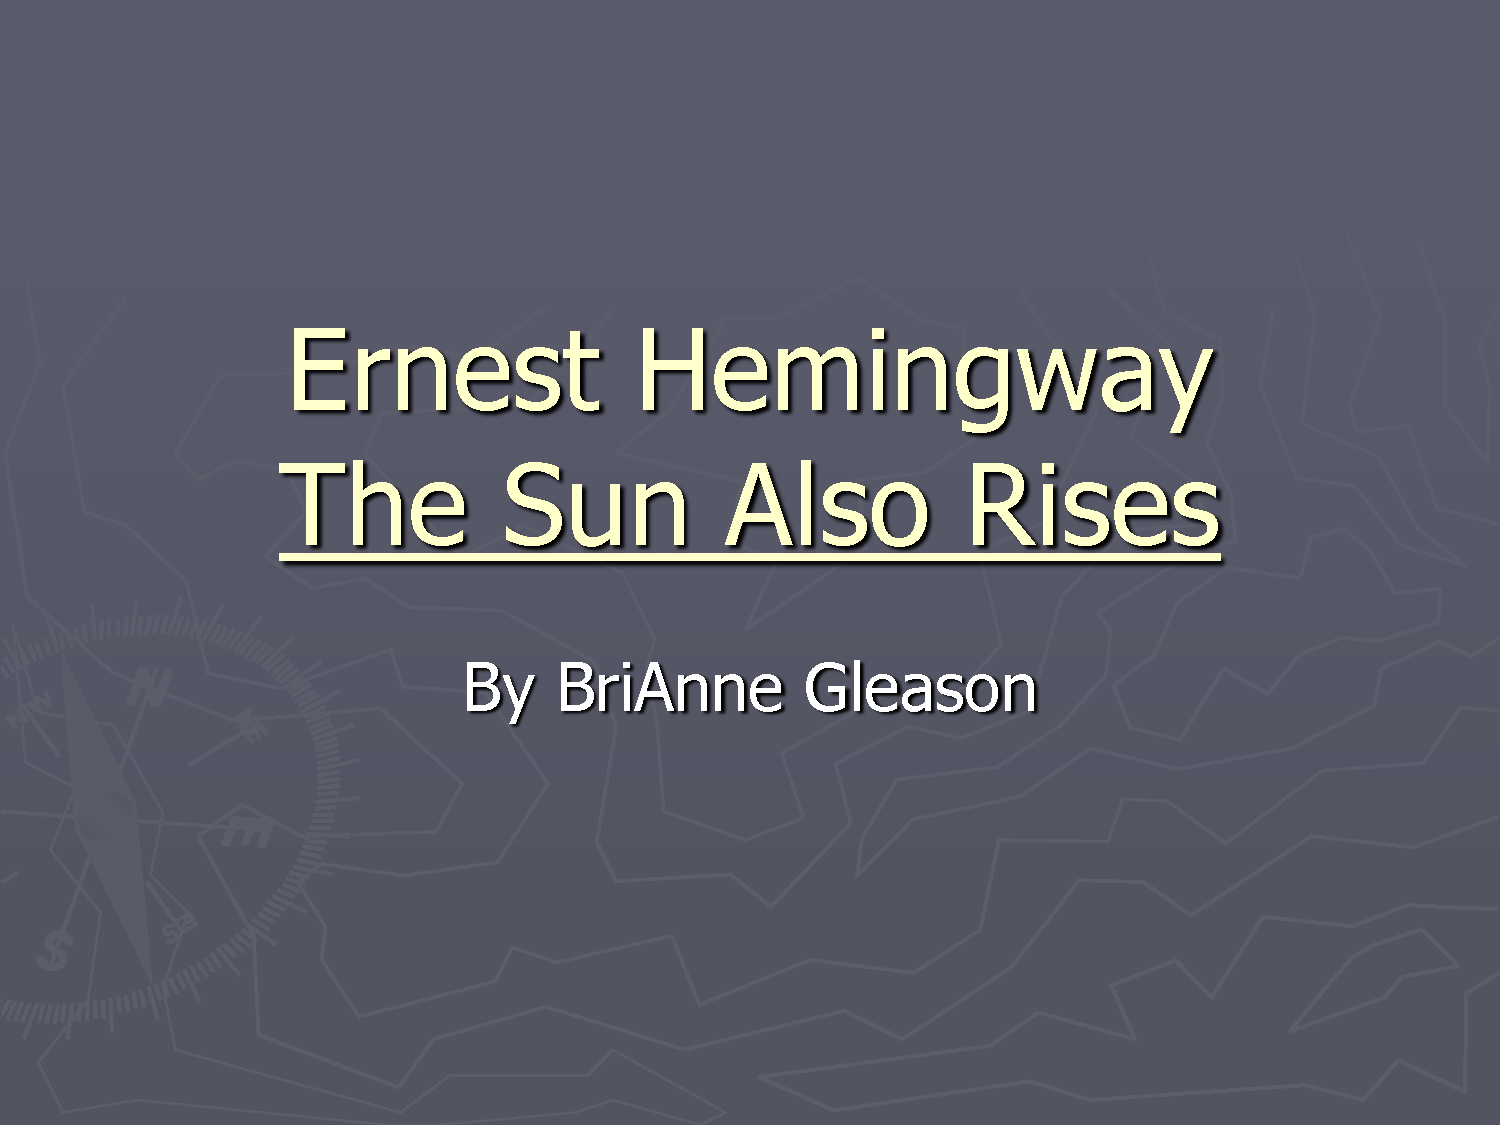 a review of the book the sun also rises by ernest hemingway Book overview the sun also rises was ernest hemingway's first big novel, and immediately established hemingway as one of the great prose stylists july 2nd, 1961) was the highly influential american author of such classic novels as the sun also rises, for whom the bell tolls, the old.